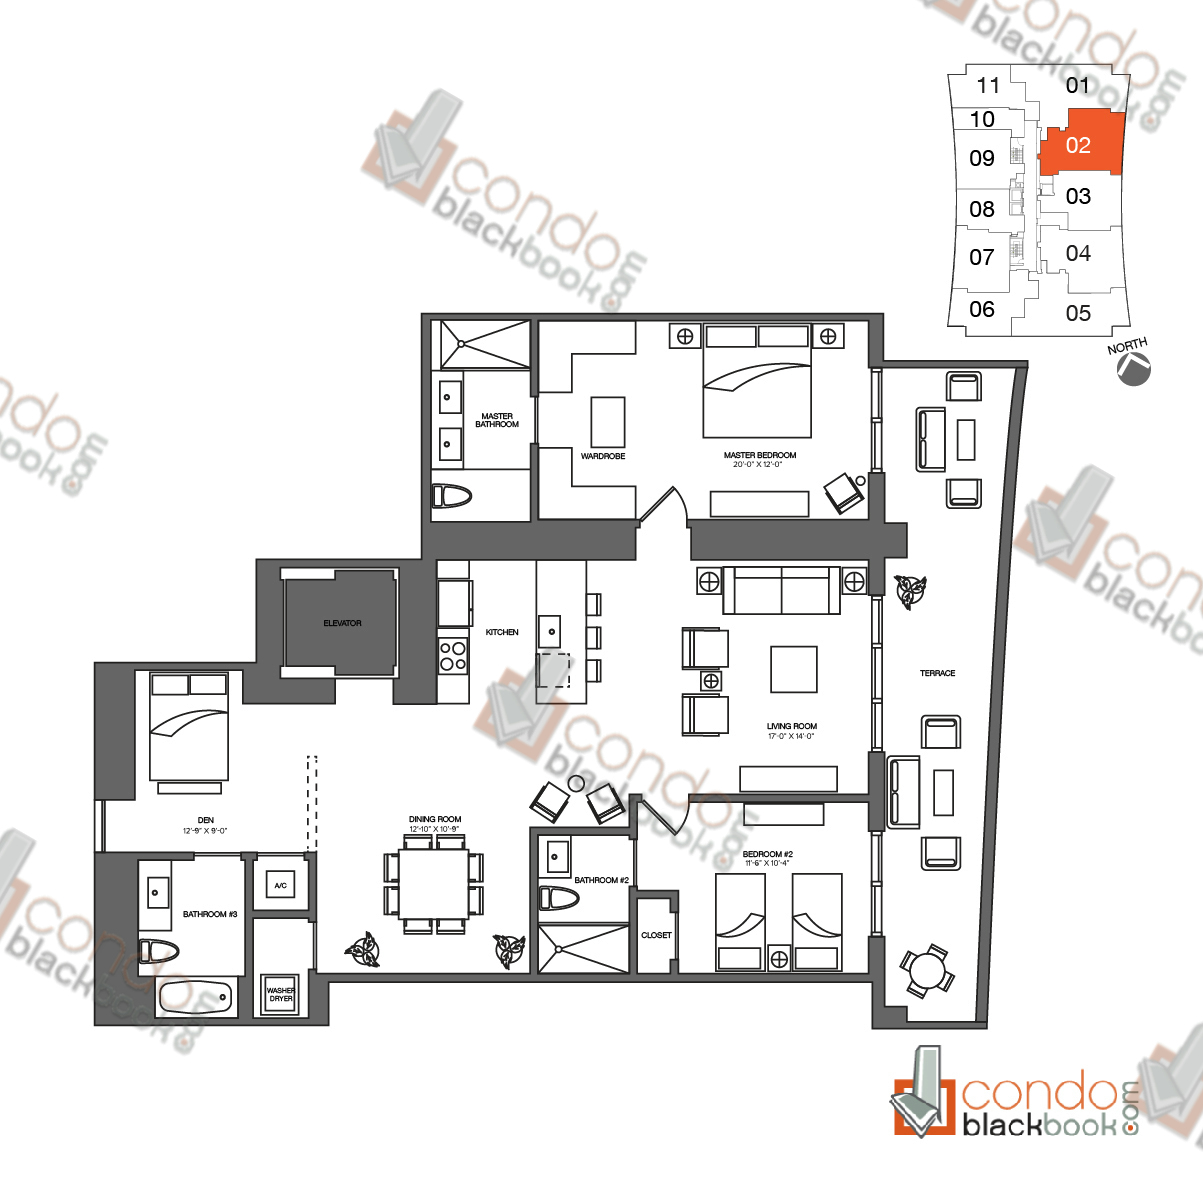 Floor plan for 1010 Brickell Brickell Miami, model Dr, line 02, 2/3 + Den bedrooms, 1,778 sq ft